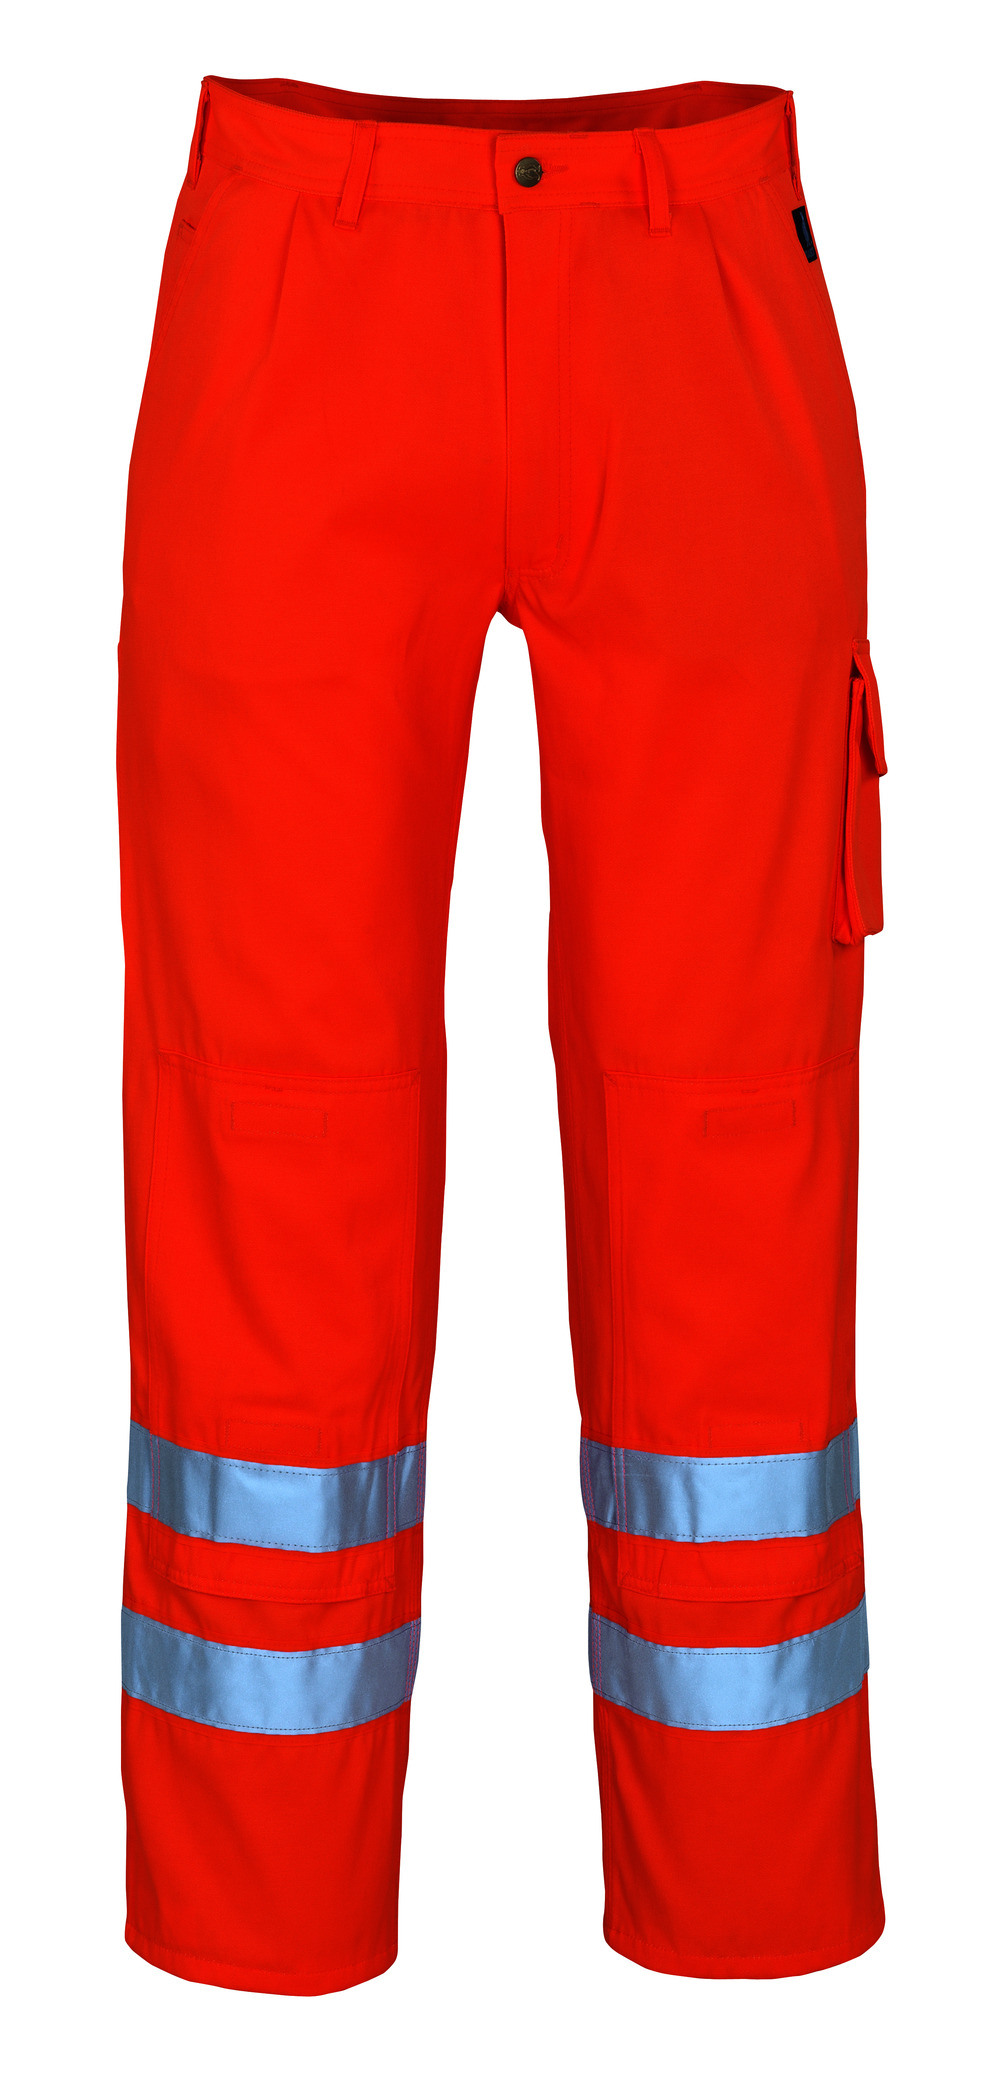 00479-860-14 Trousers with kneepad pockets - hi-vis orange